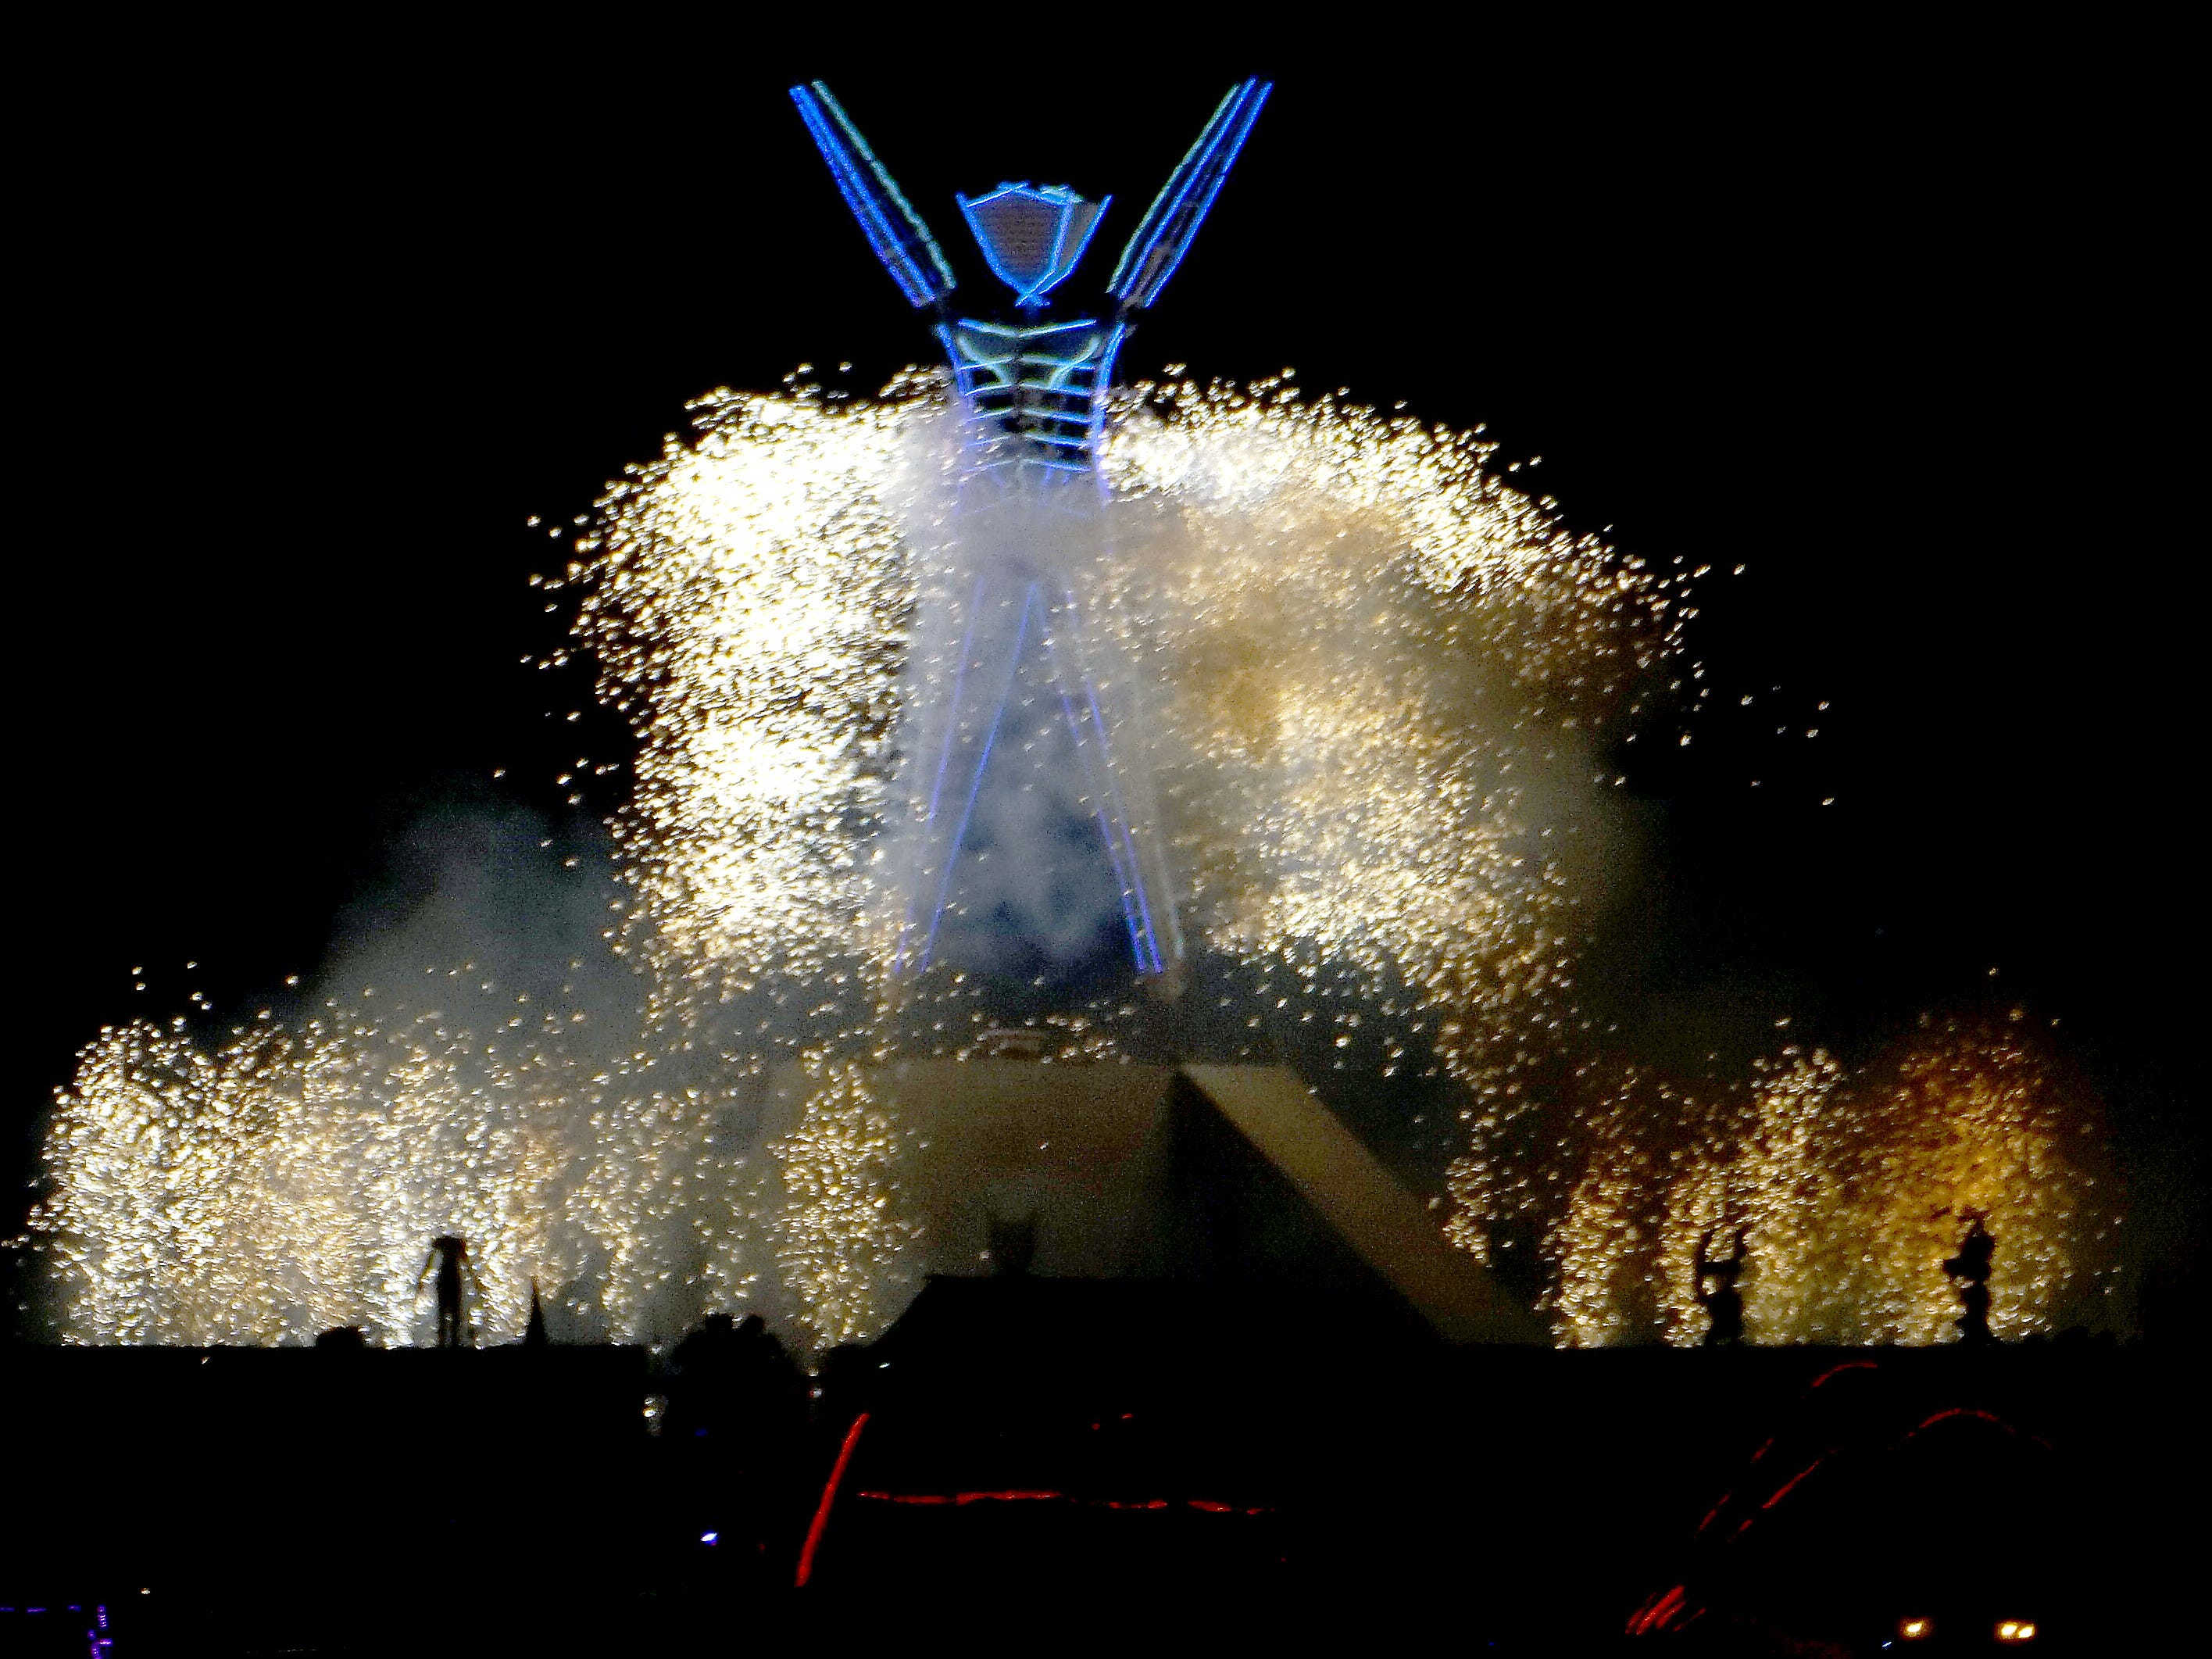 The approximately 100-foot-tall Man burns on Saturday night during a raucous celebration at Burning Man Sept. 2, 2018; Reno